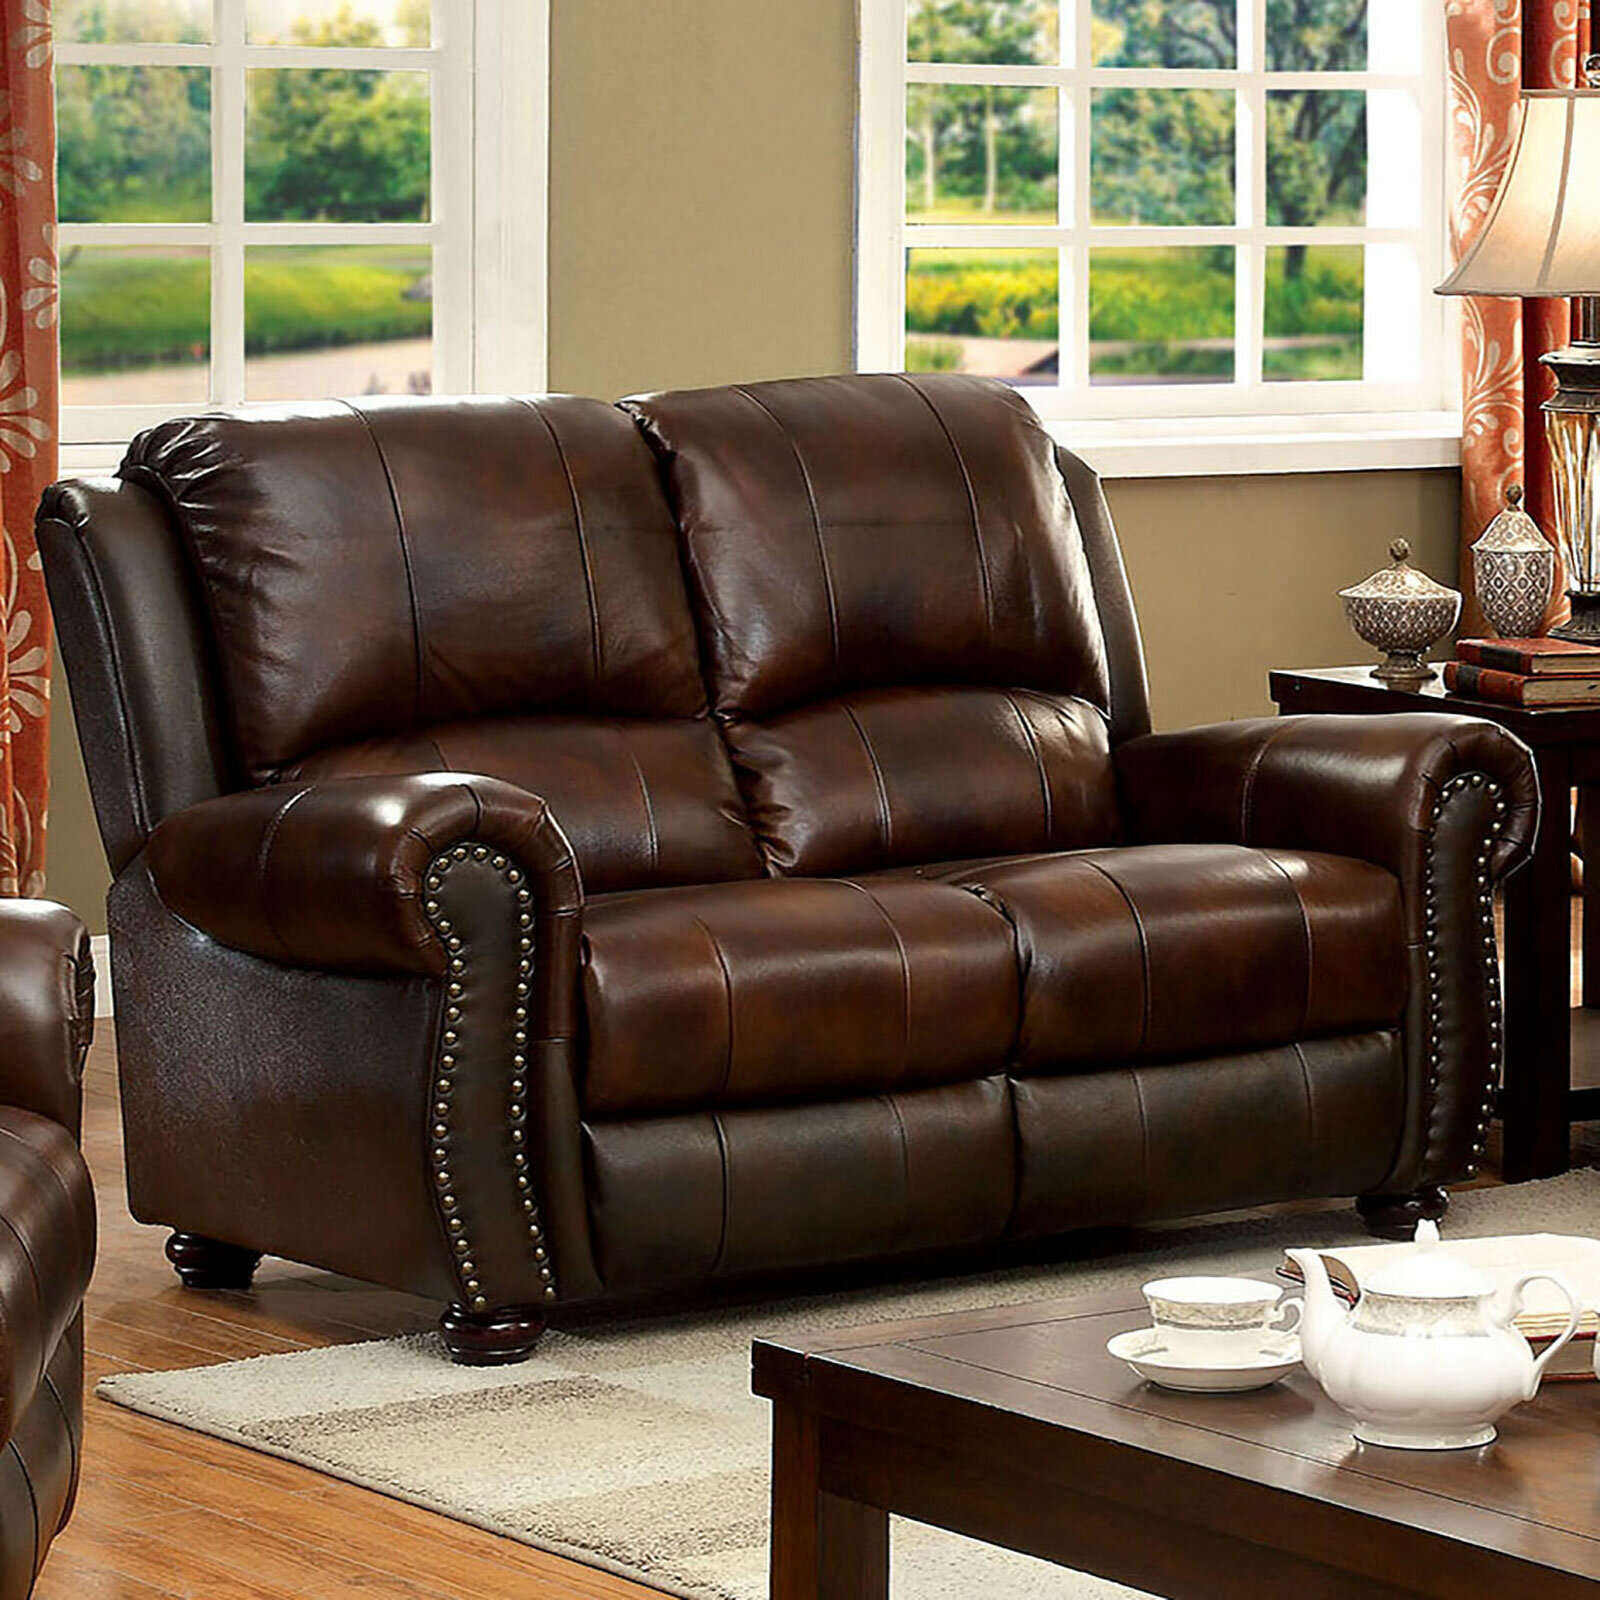 Darby Home Co Gonsales Leather Match 60 25 Wide Rolled Arm Loveseat Wayfair